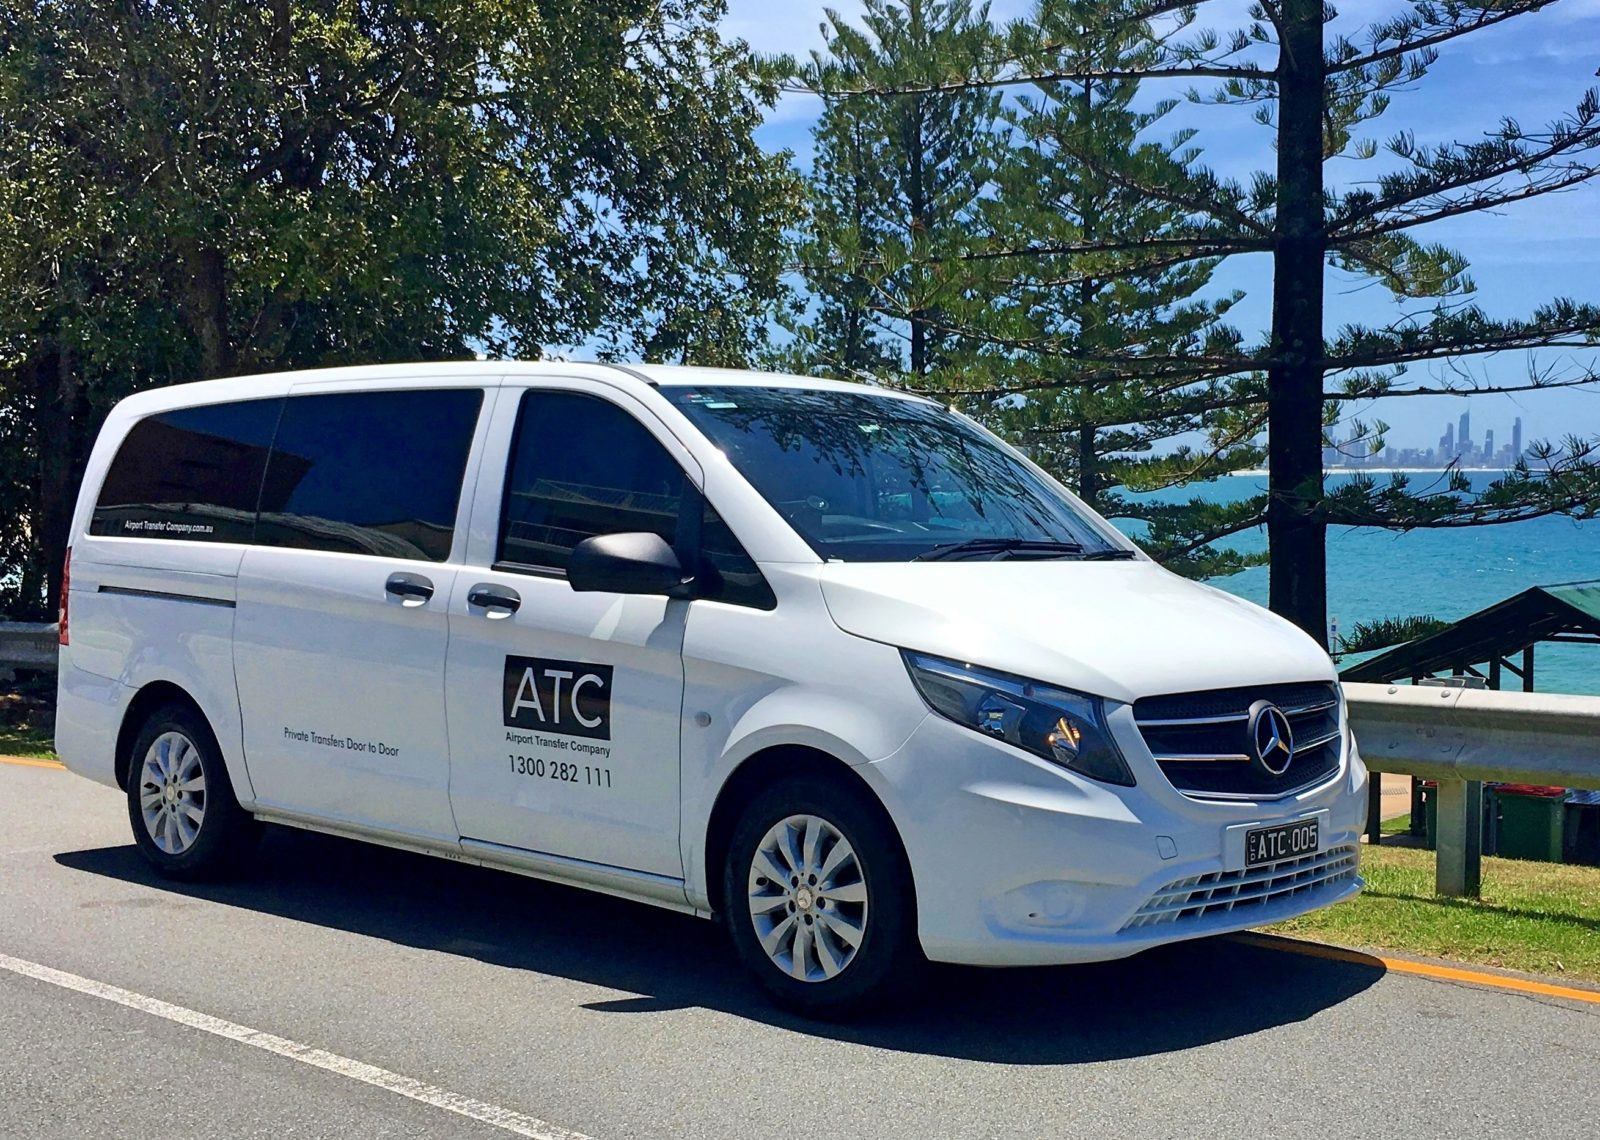 ATC offers door to door airport shuttle and private transfers